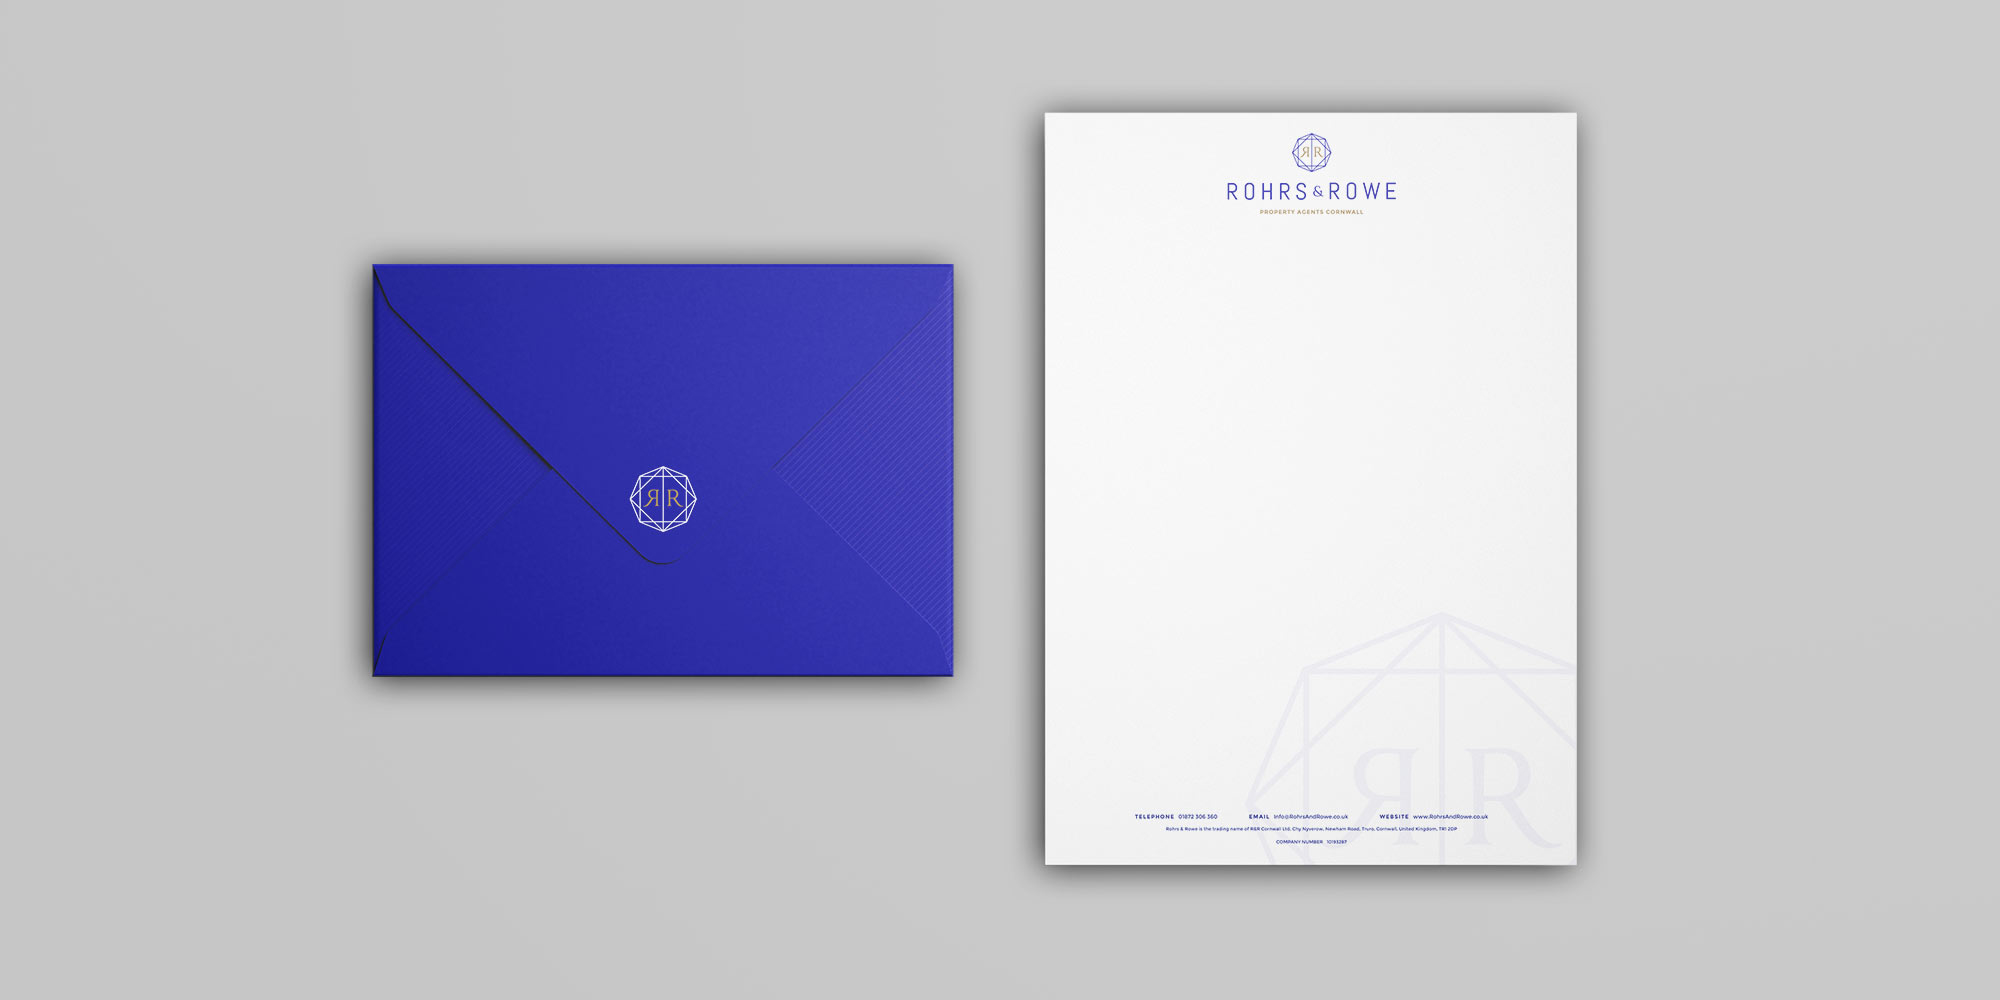 Rohrs & Rowe Stationery Design